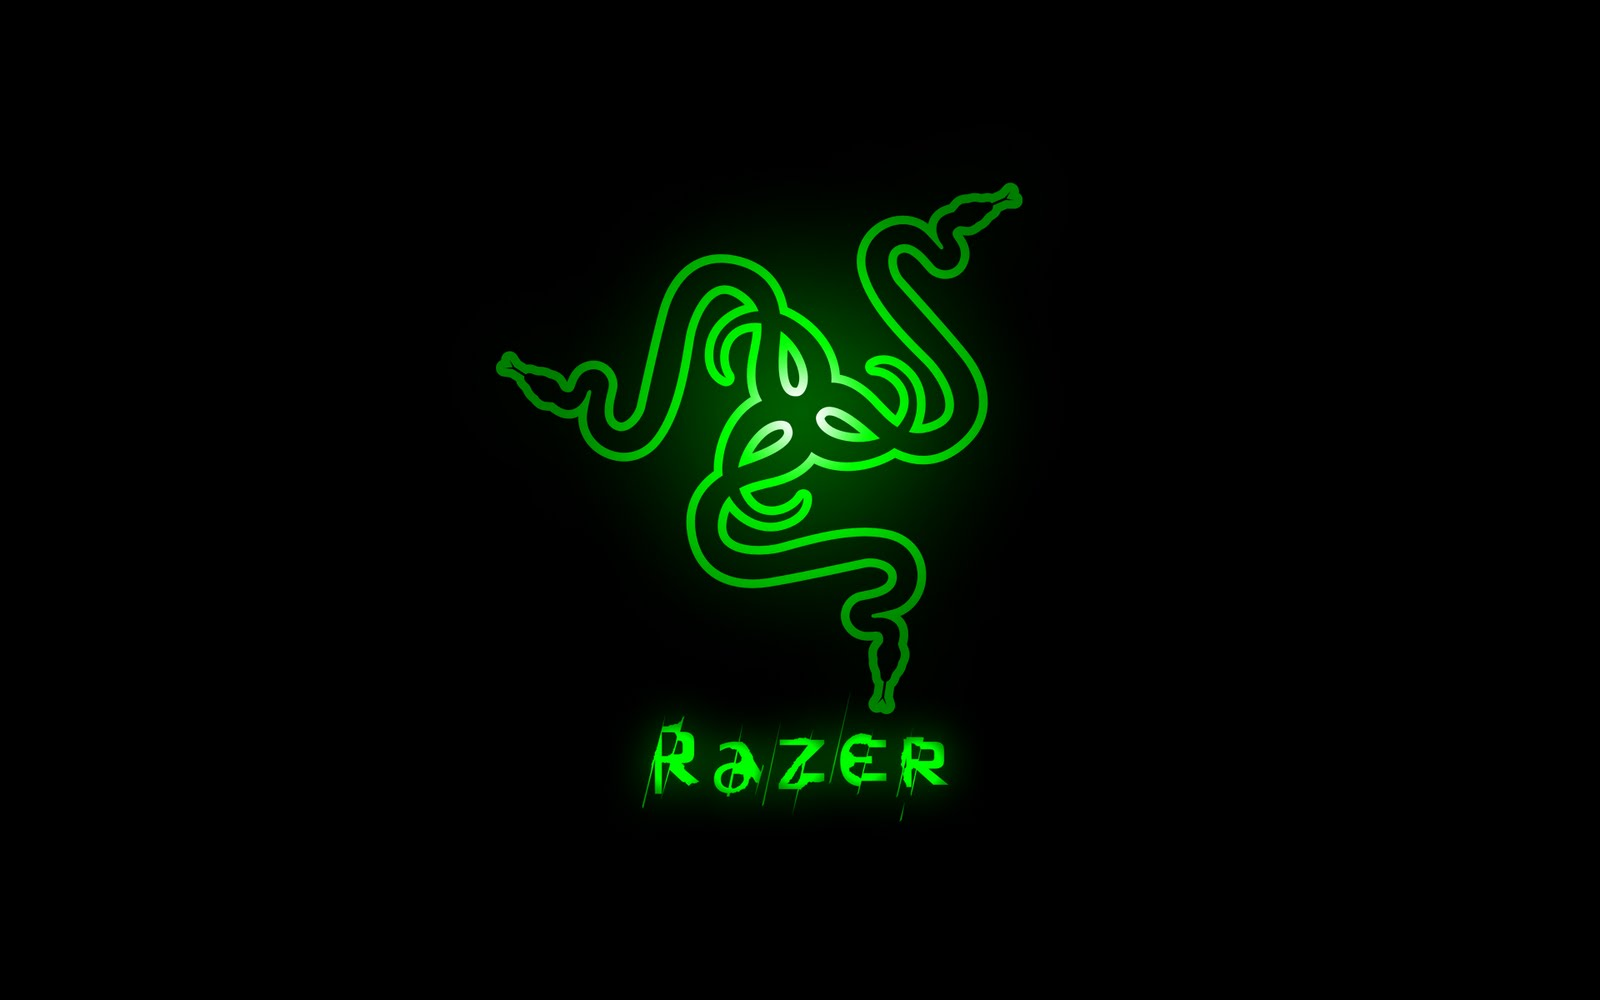 1600x1000 > Razer Wallpapers